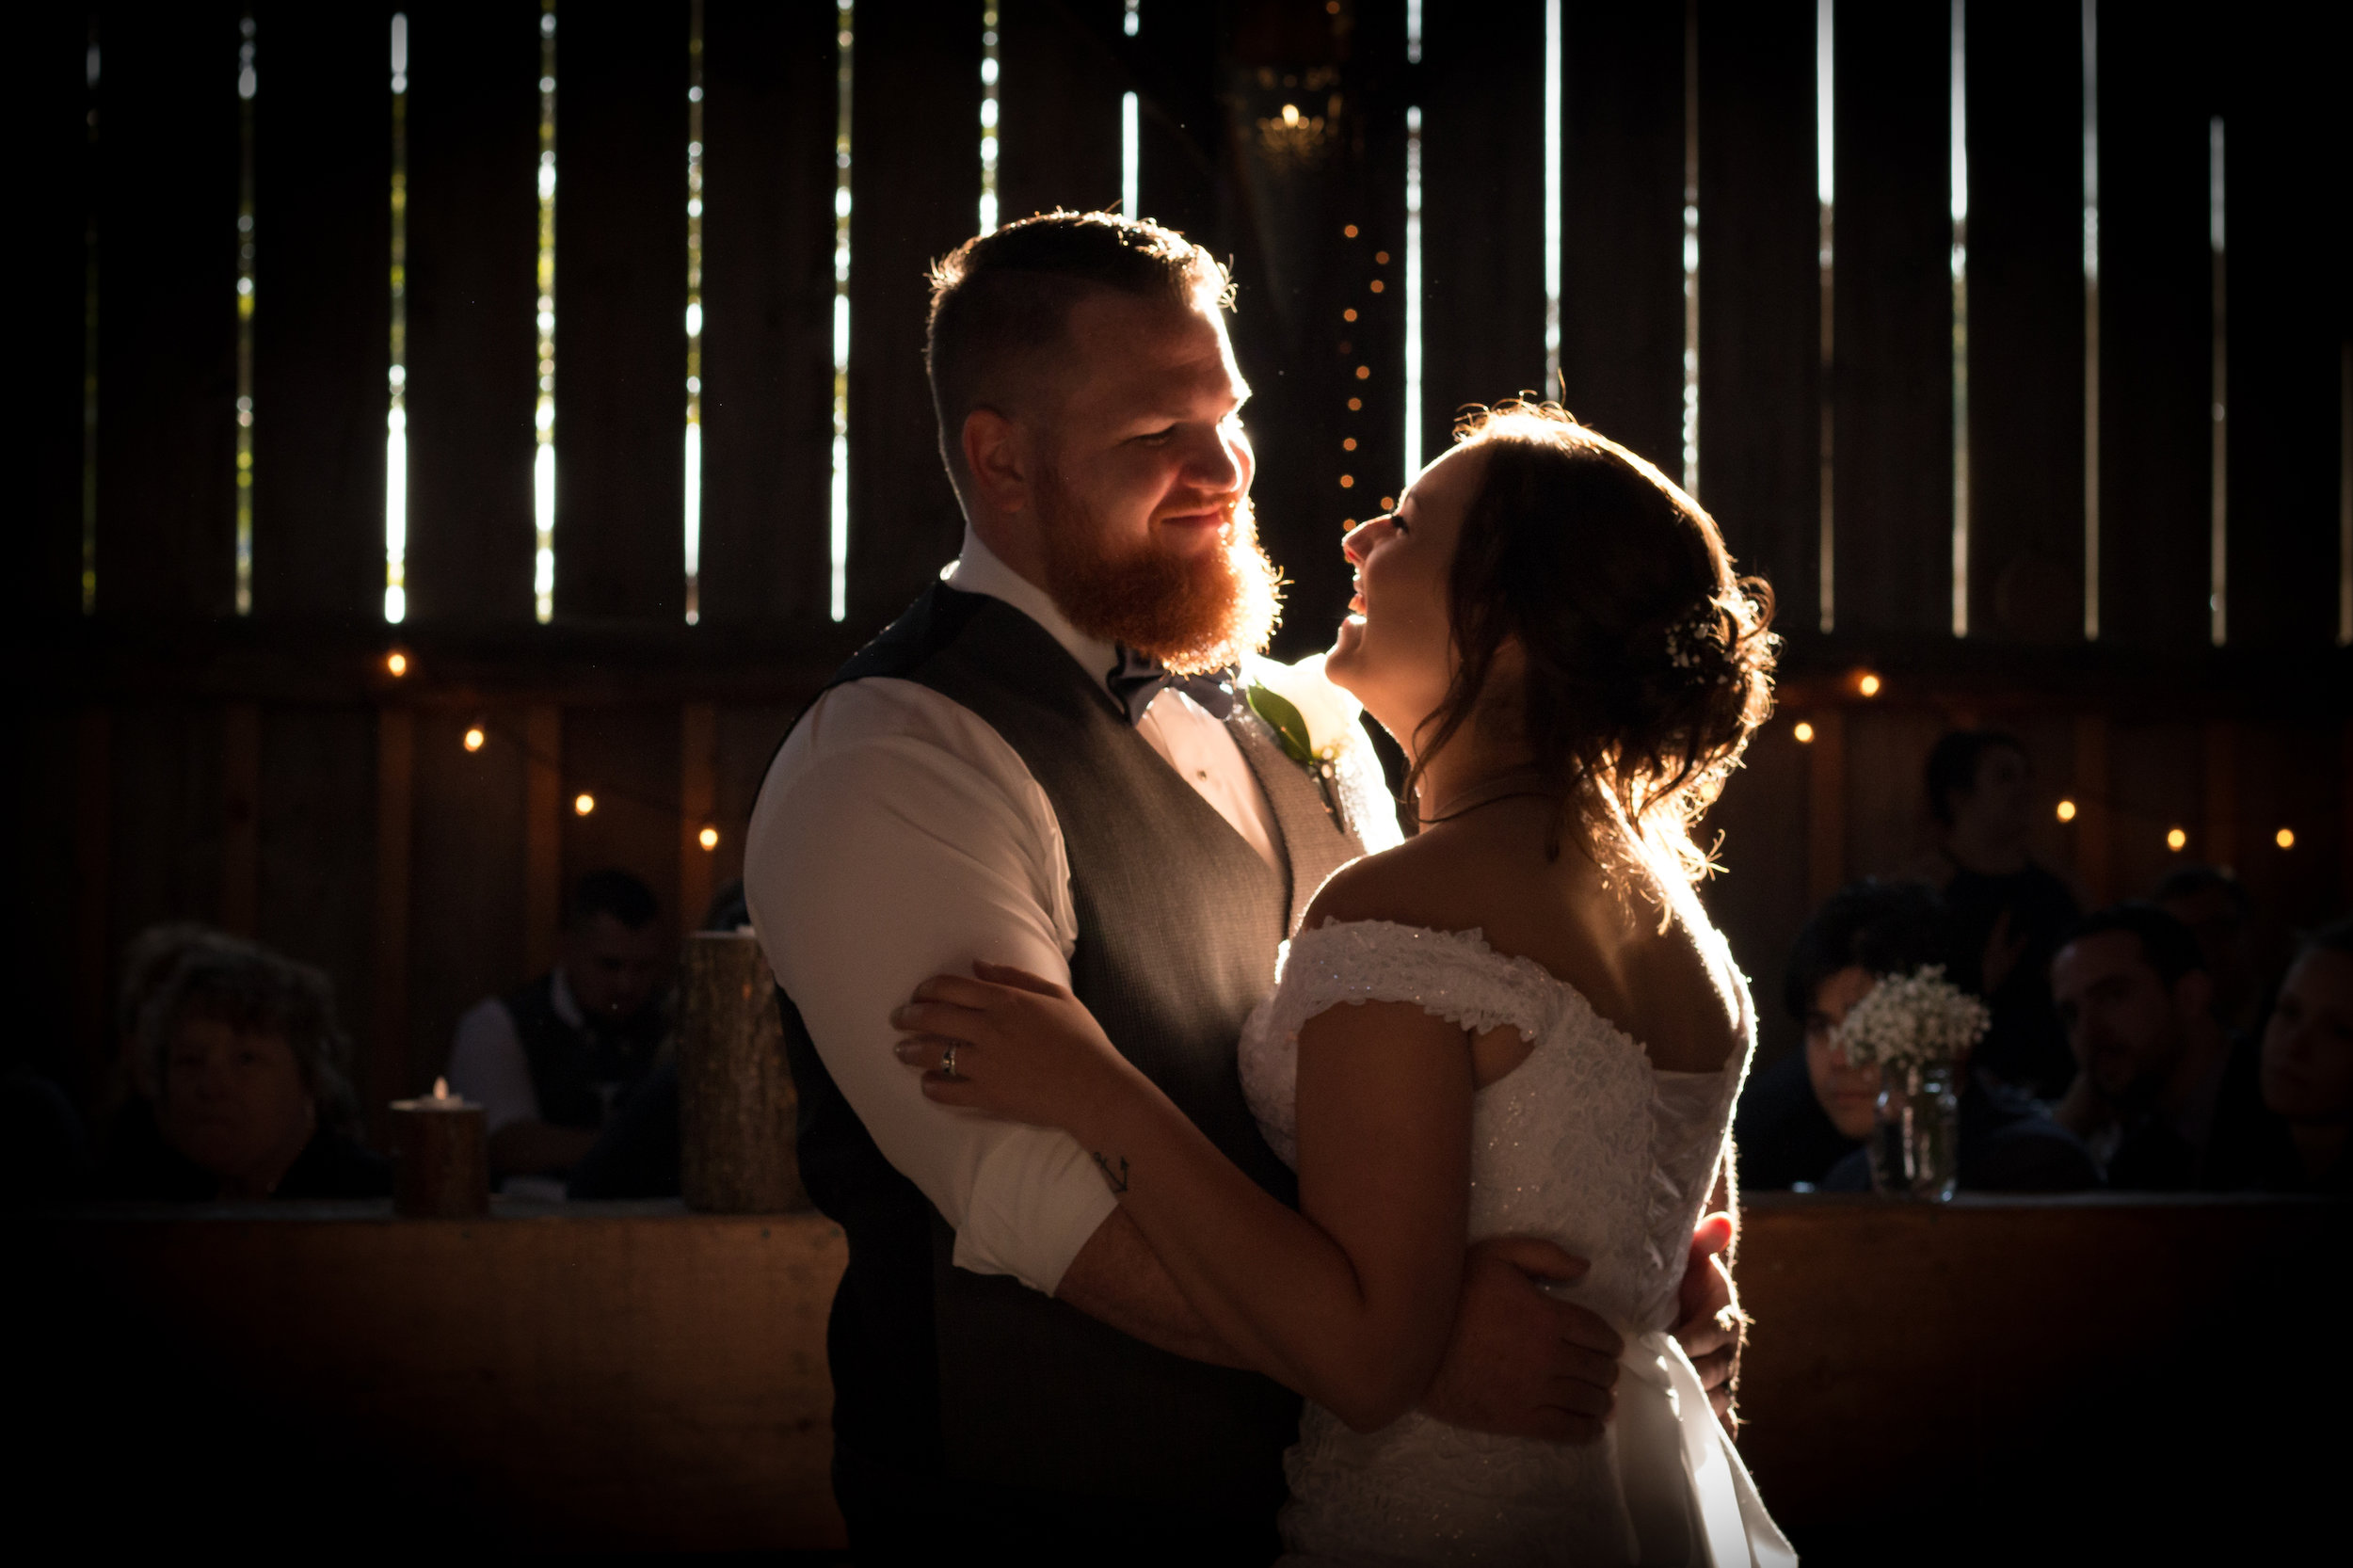 emilysotiphotography-LIB-nikki+greg-firstdancebarnwedding.jpg